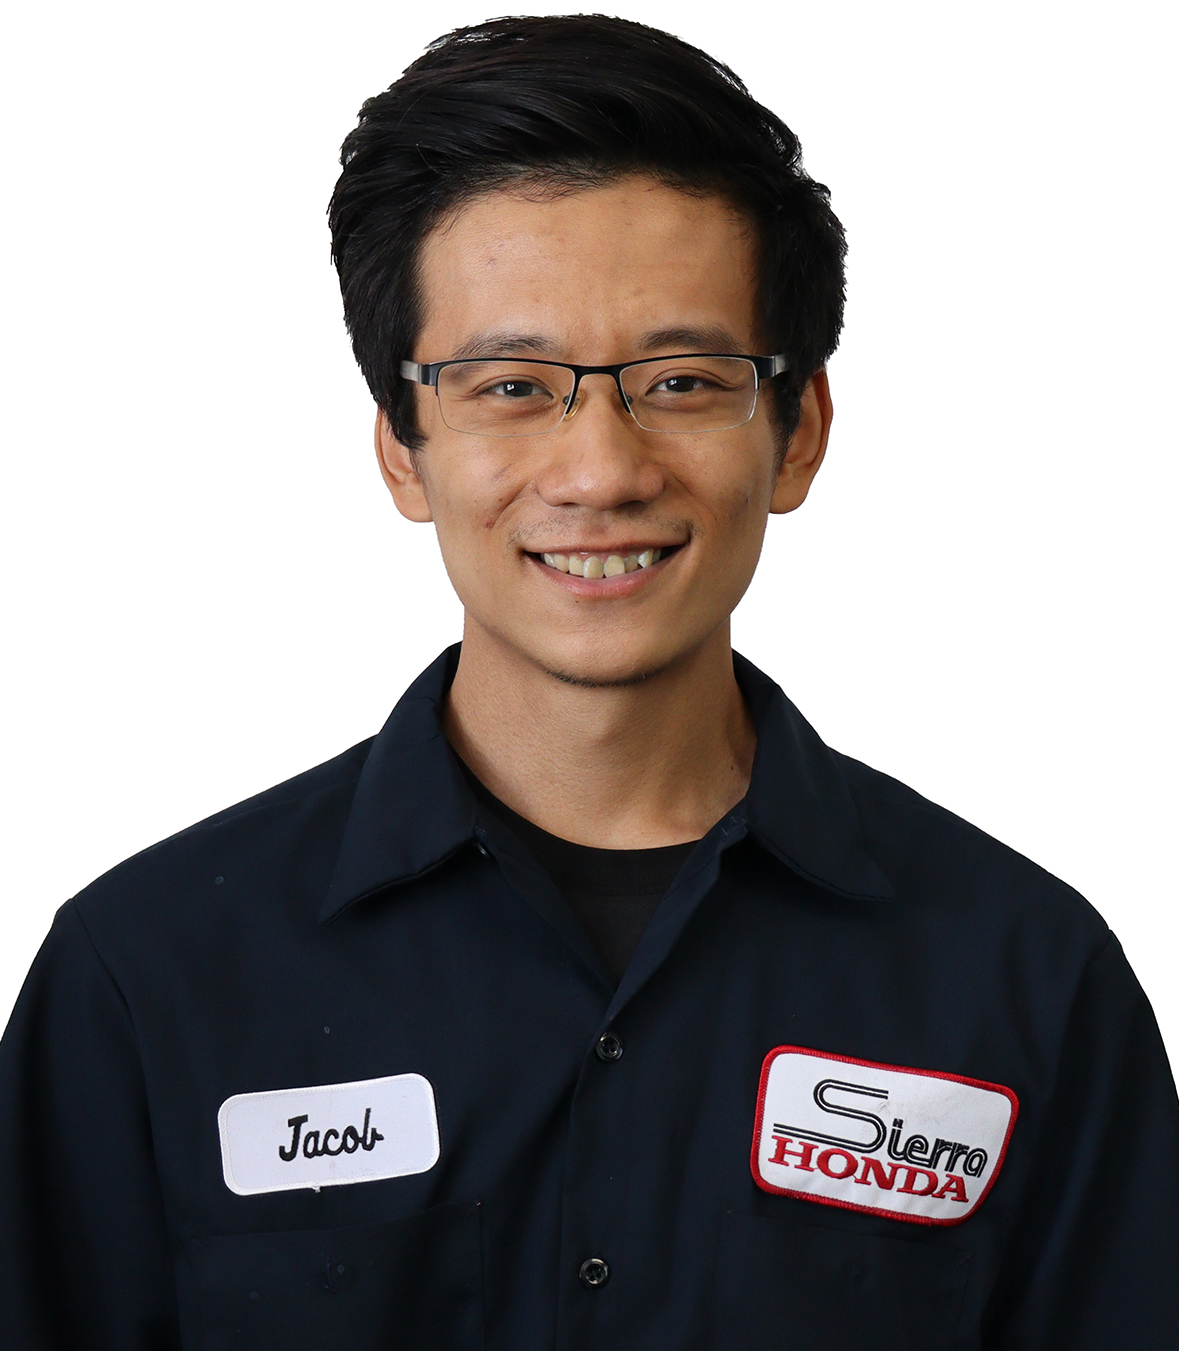 Tsz Long Chang (Jacob)